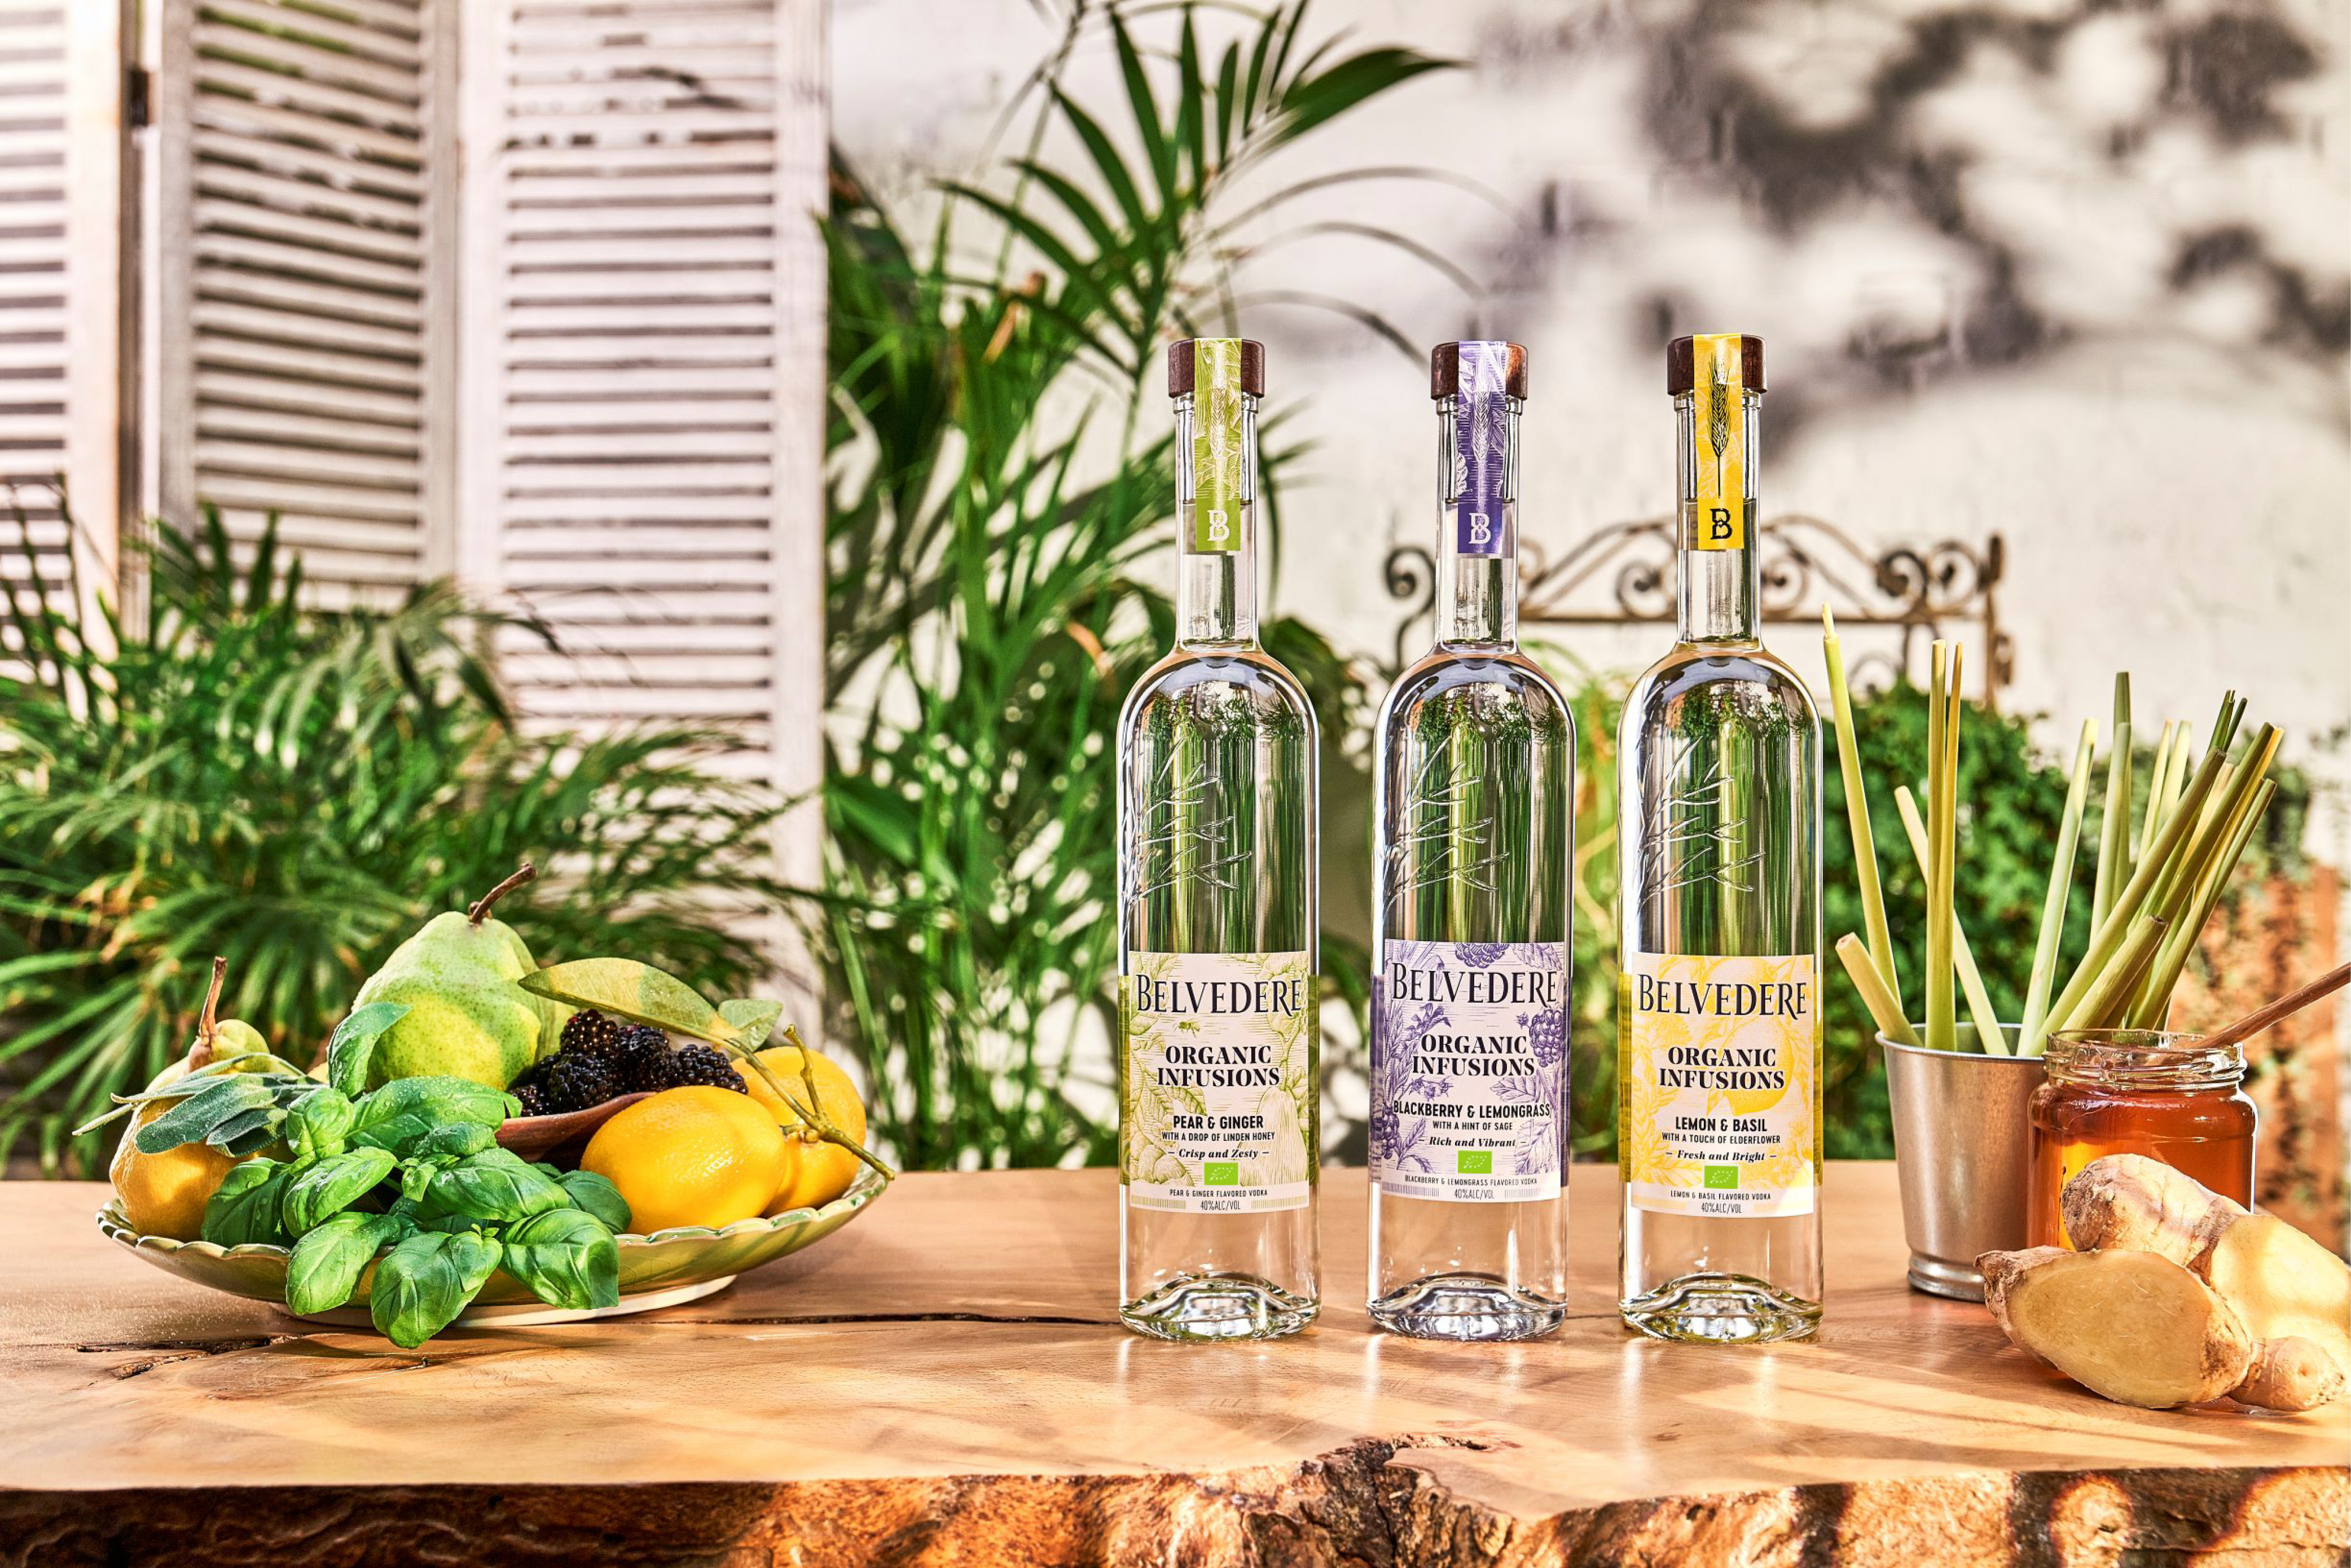 Belevedere Organic Infusions come in three flavours: lemon and basil, with a touch of elderflower, pear and ginger with a hint of honey, and blackberry and lemongrass with a dash of sage